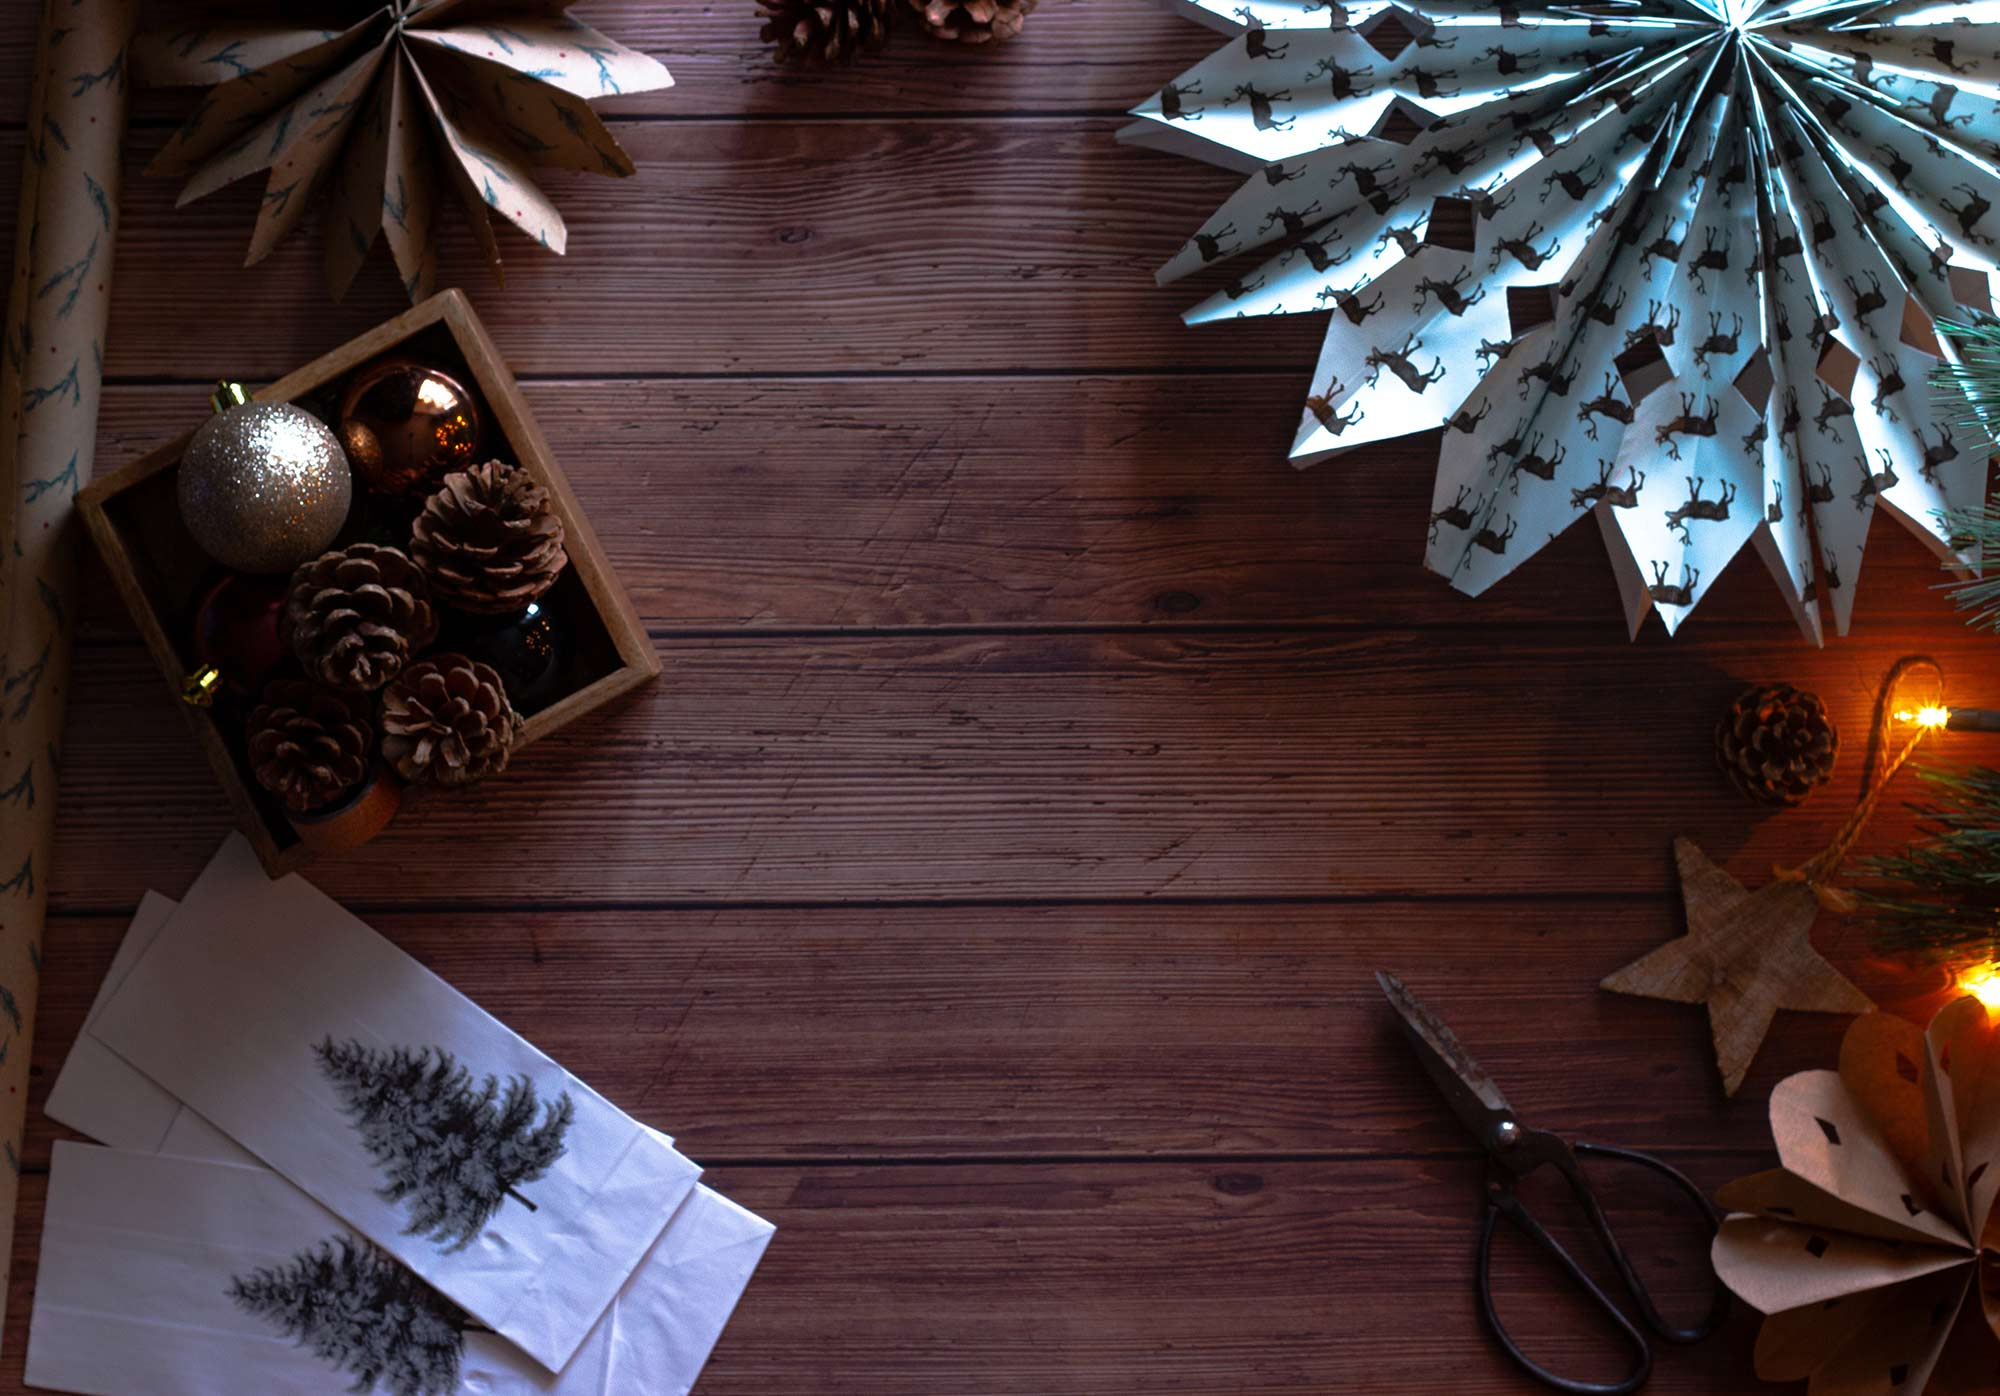 7 Creative Trends We're Seeing At Churches This Christmas Season